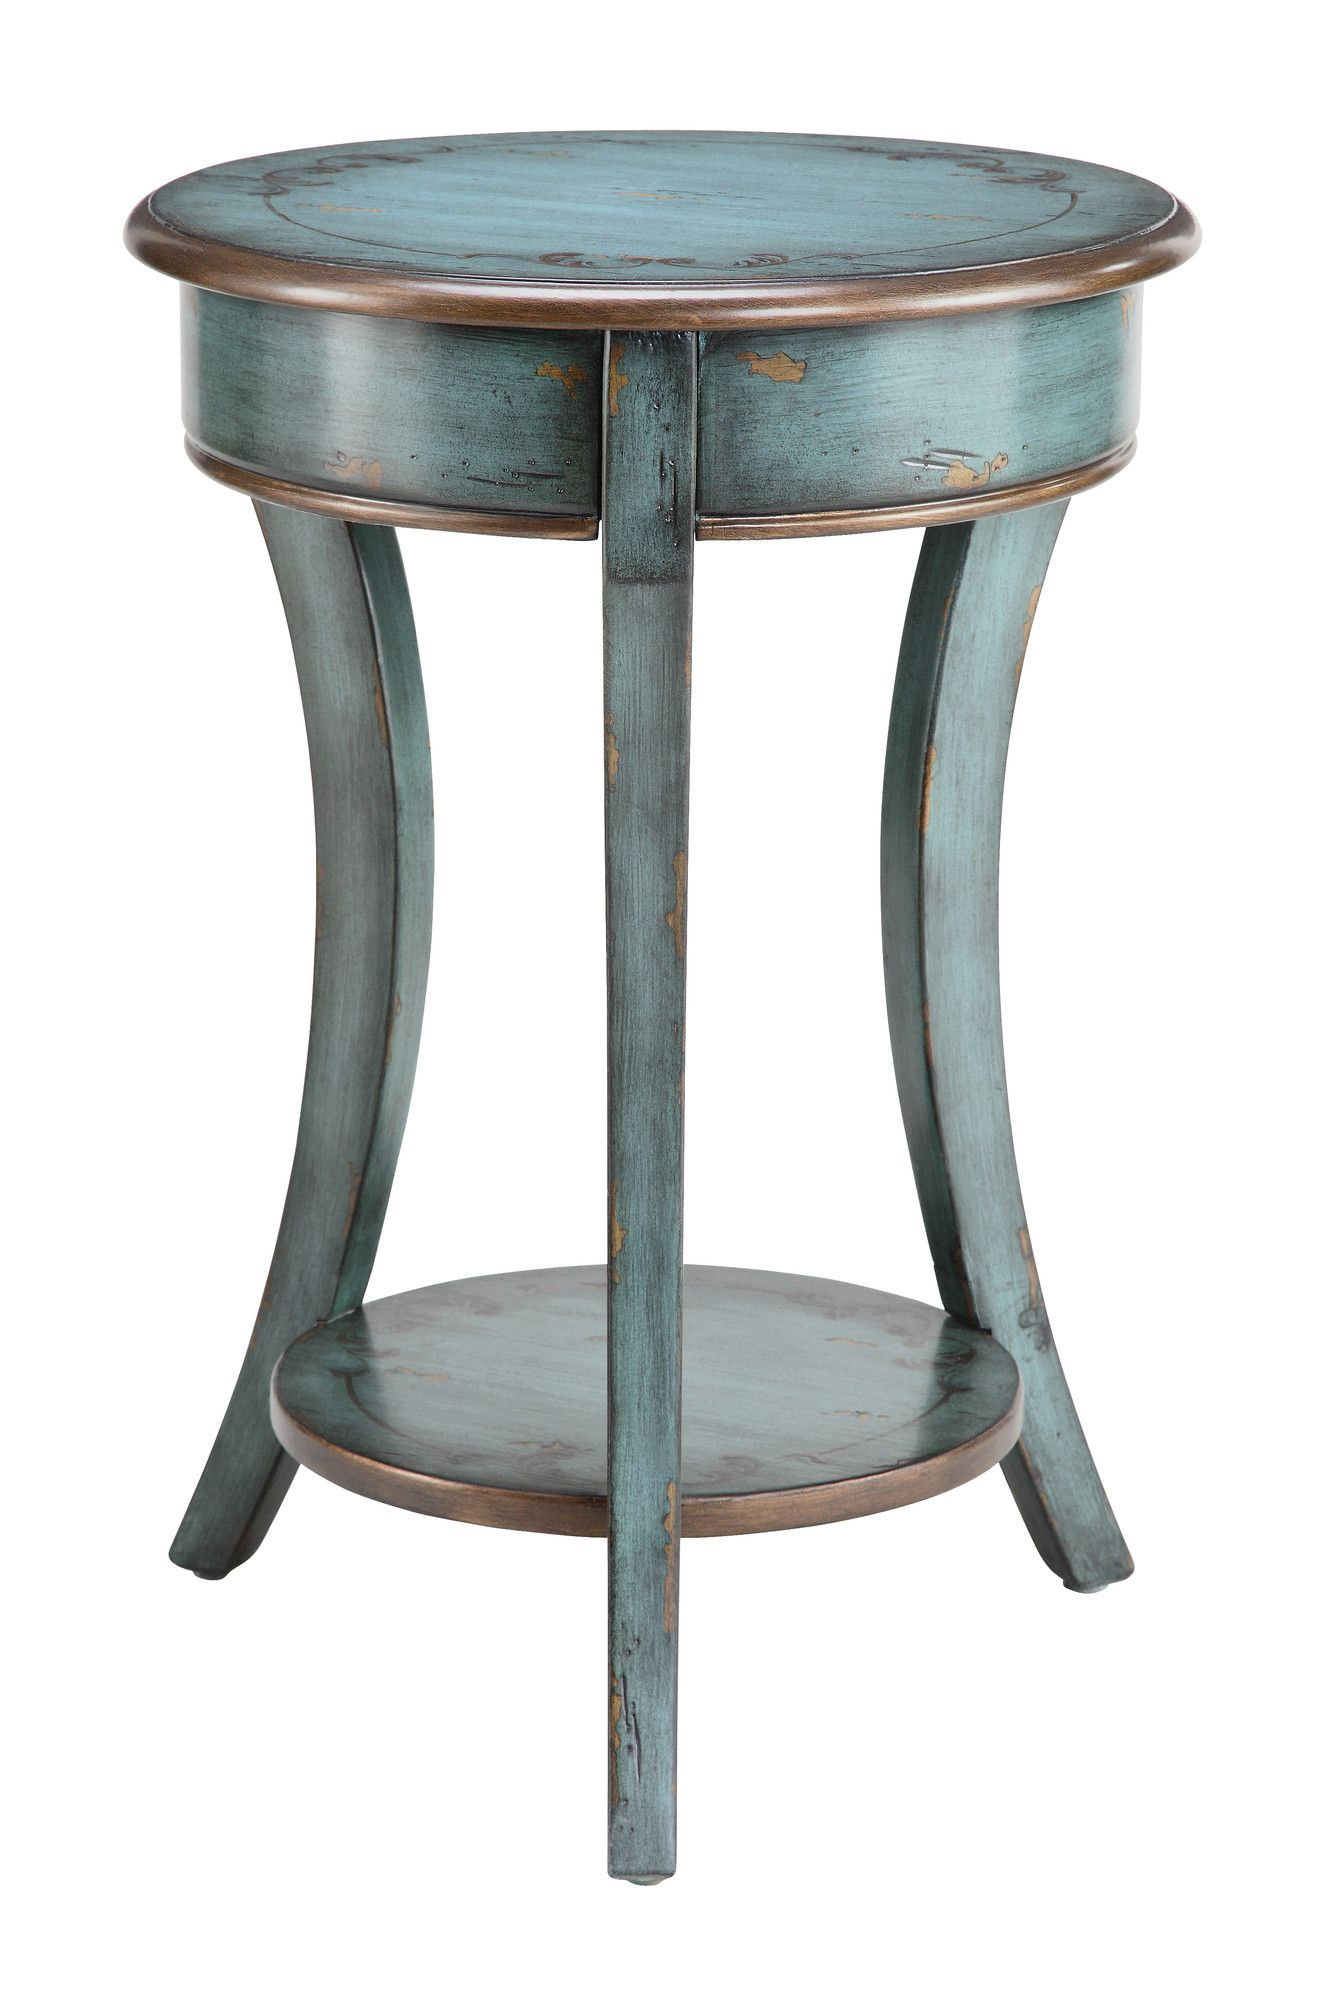 Stein World Painted Treasures End Table Bronzed And Distressed